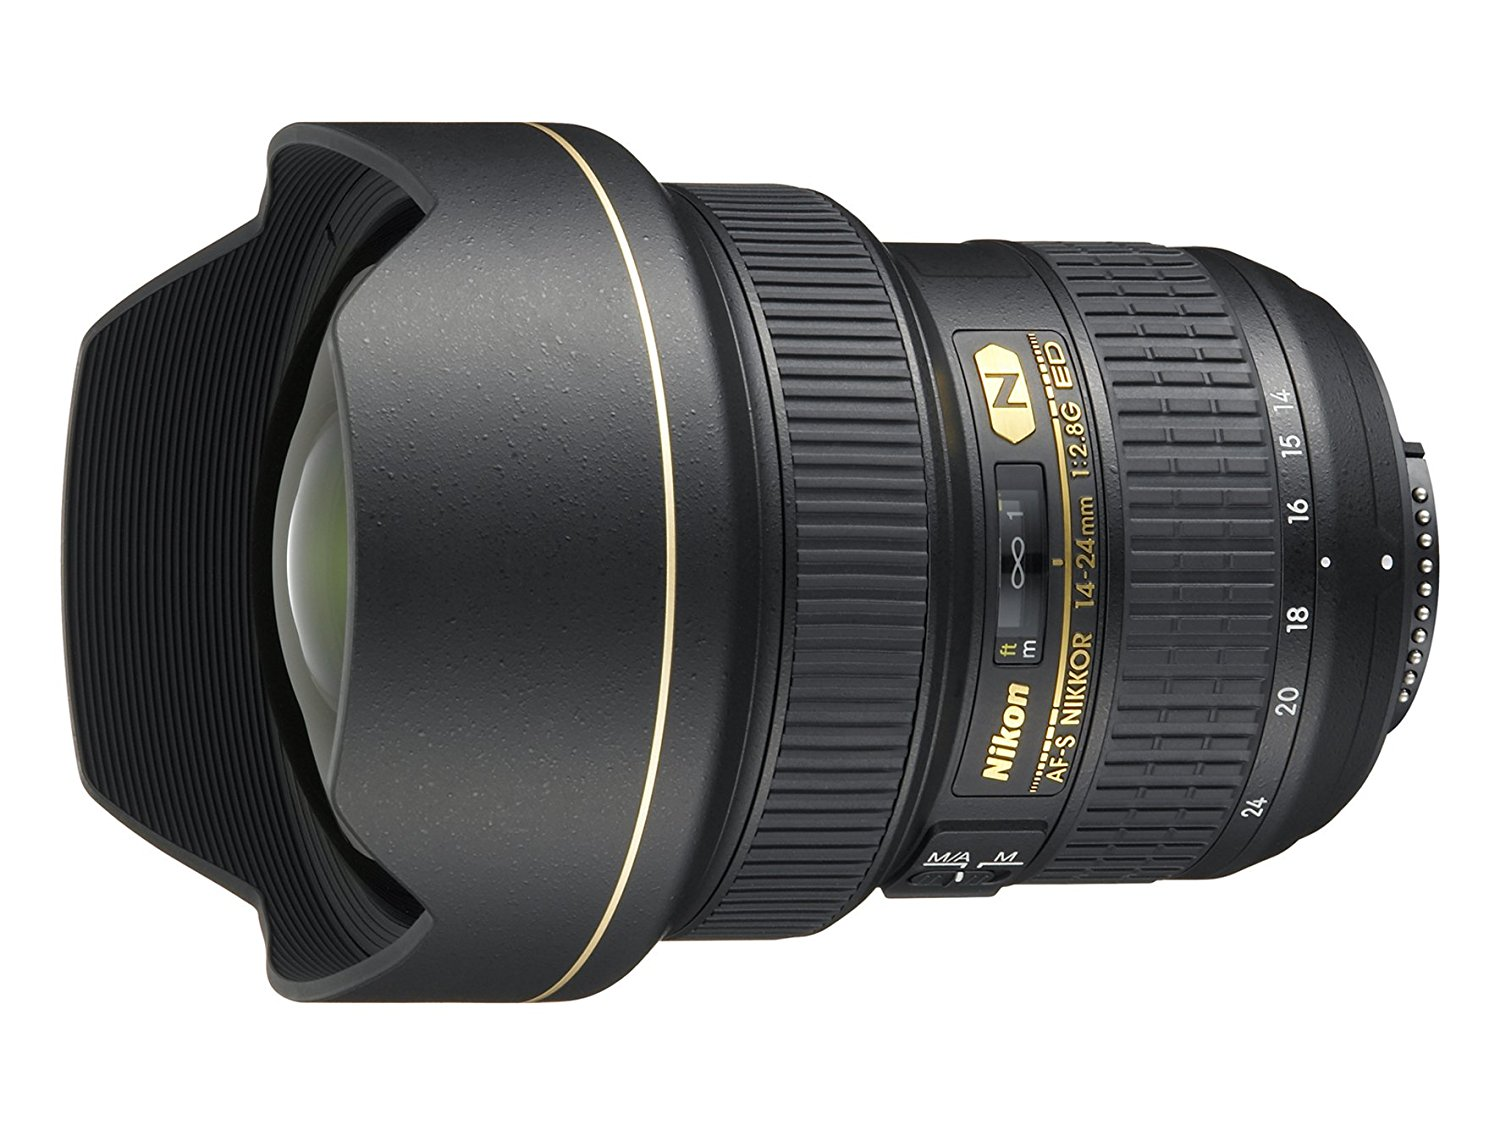 14-24mm nikon full frame lens